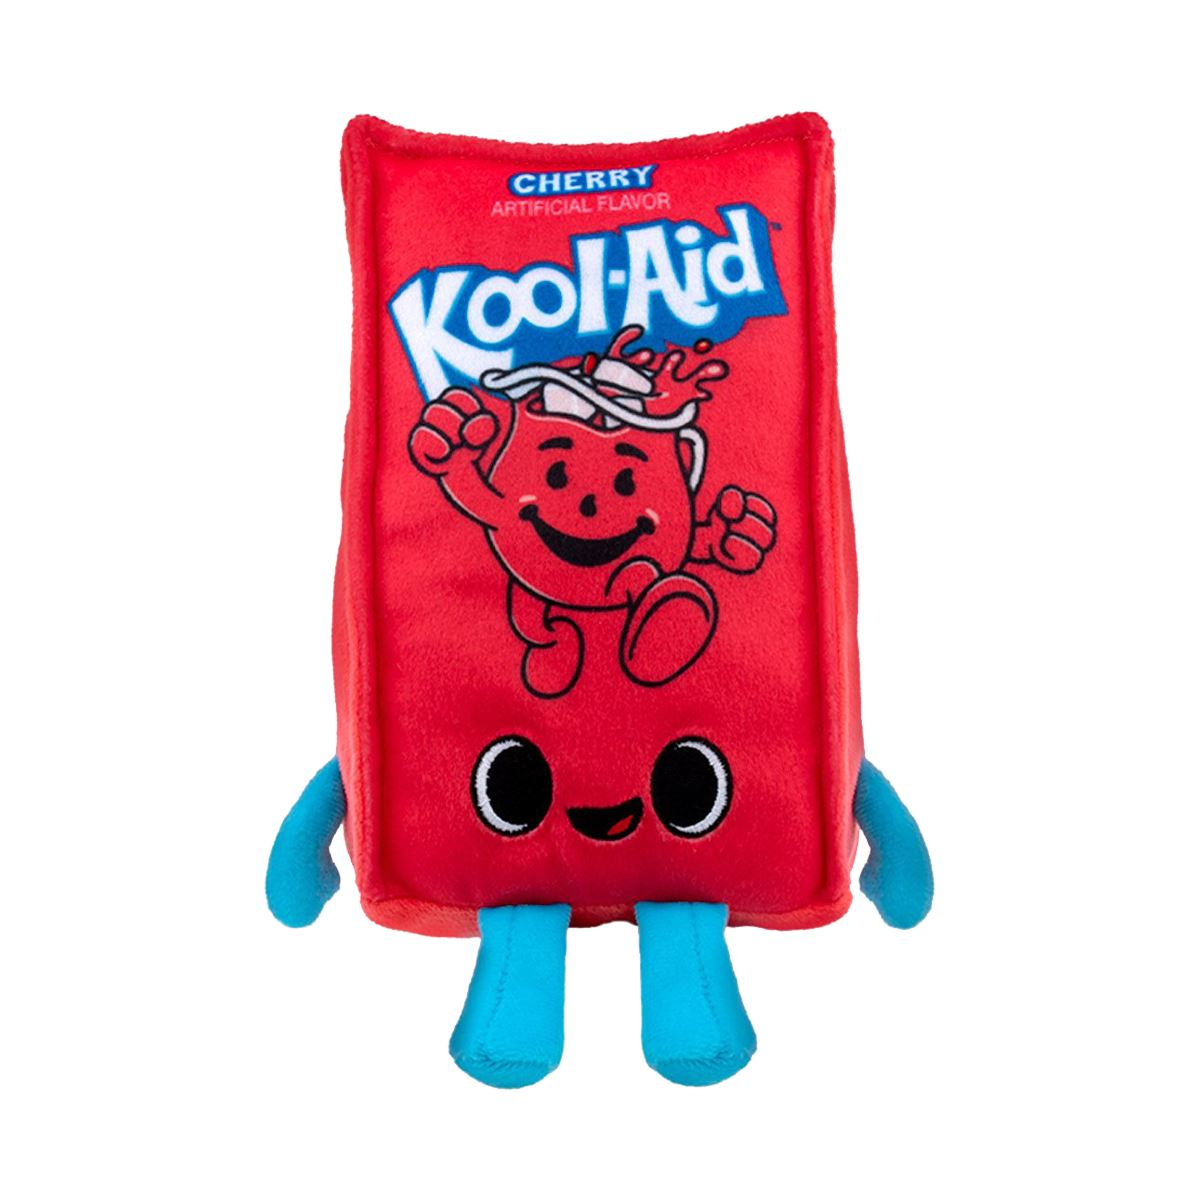 Original Kool Aid Packet Funko POP! Plush Ad Icons [PRE-ORDER] Plush Funko